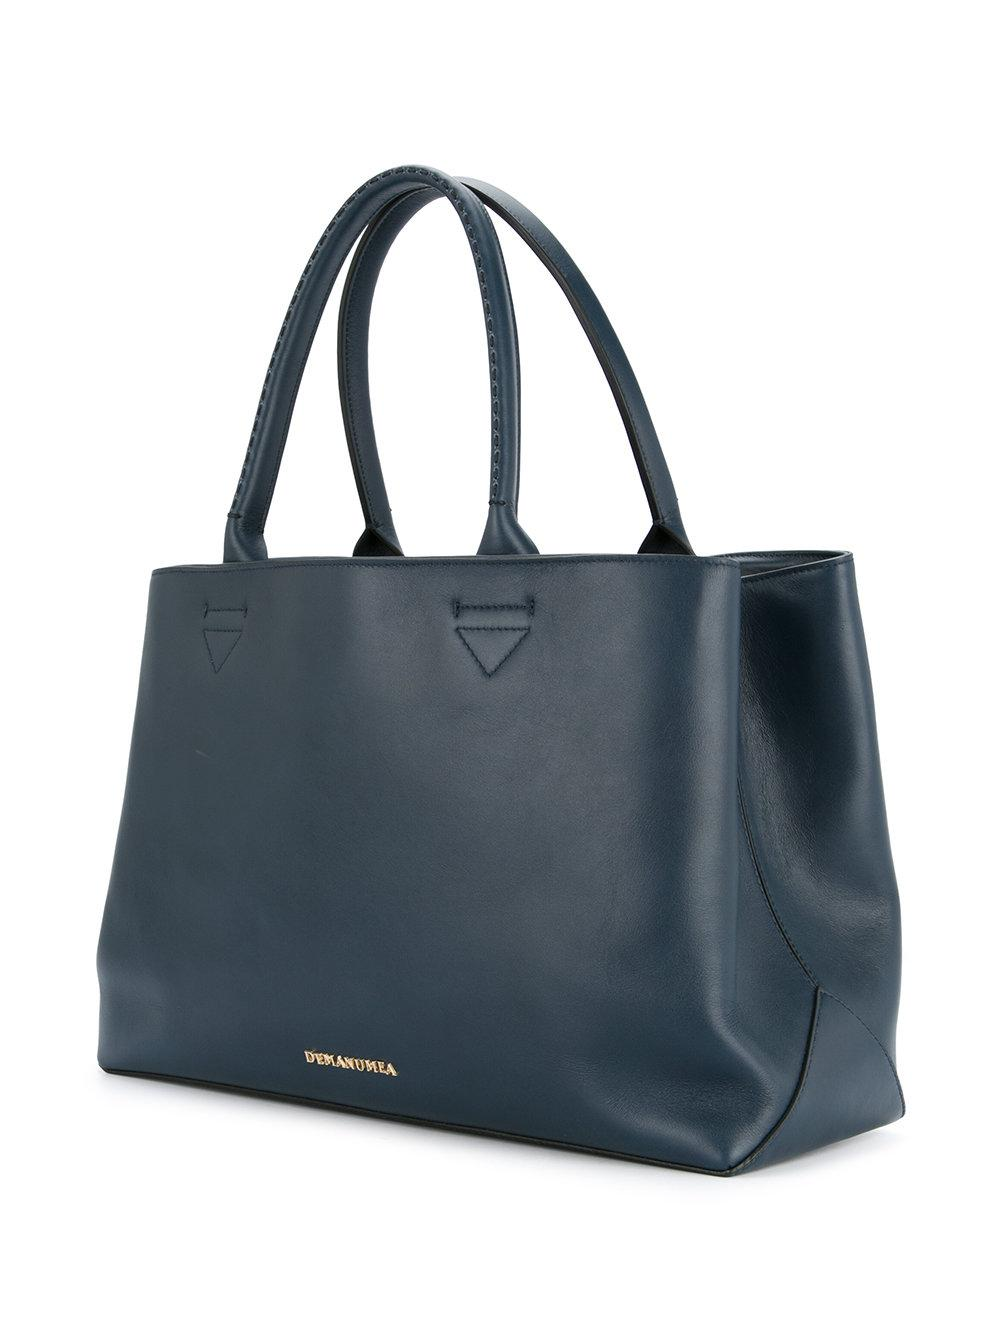 Demanumea Leather Printed Tote Bag In Blue Lyst